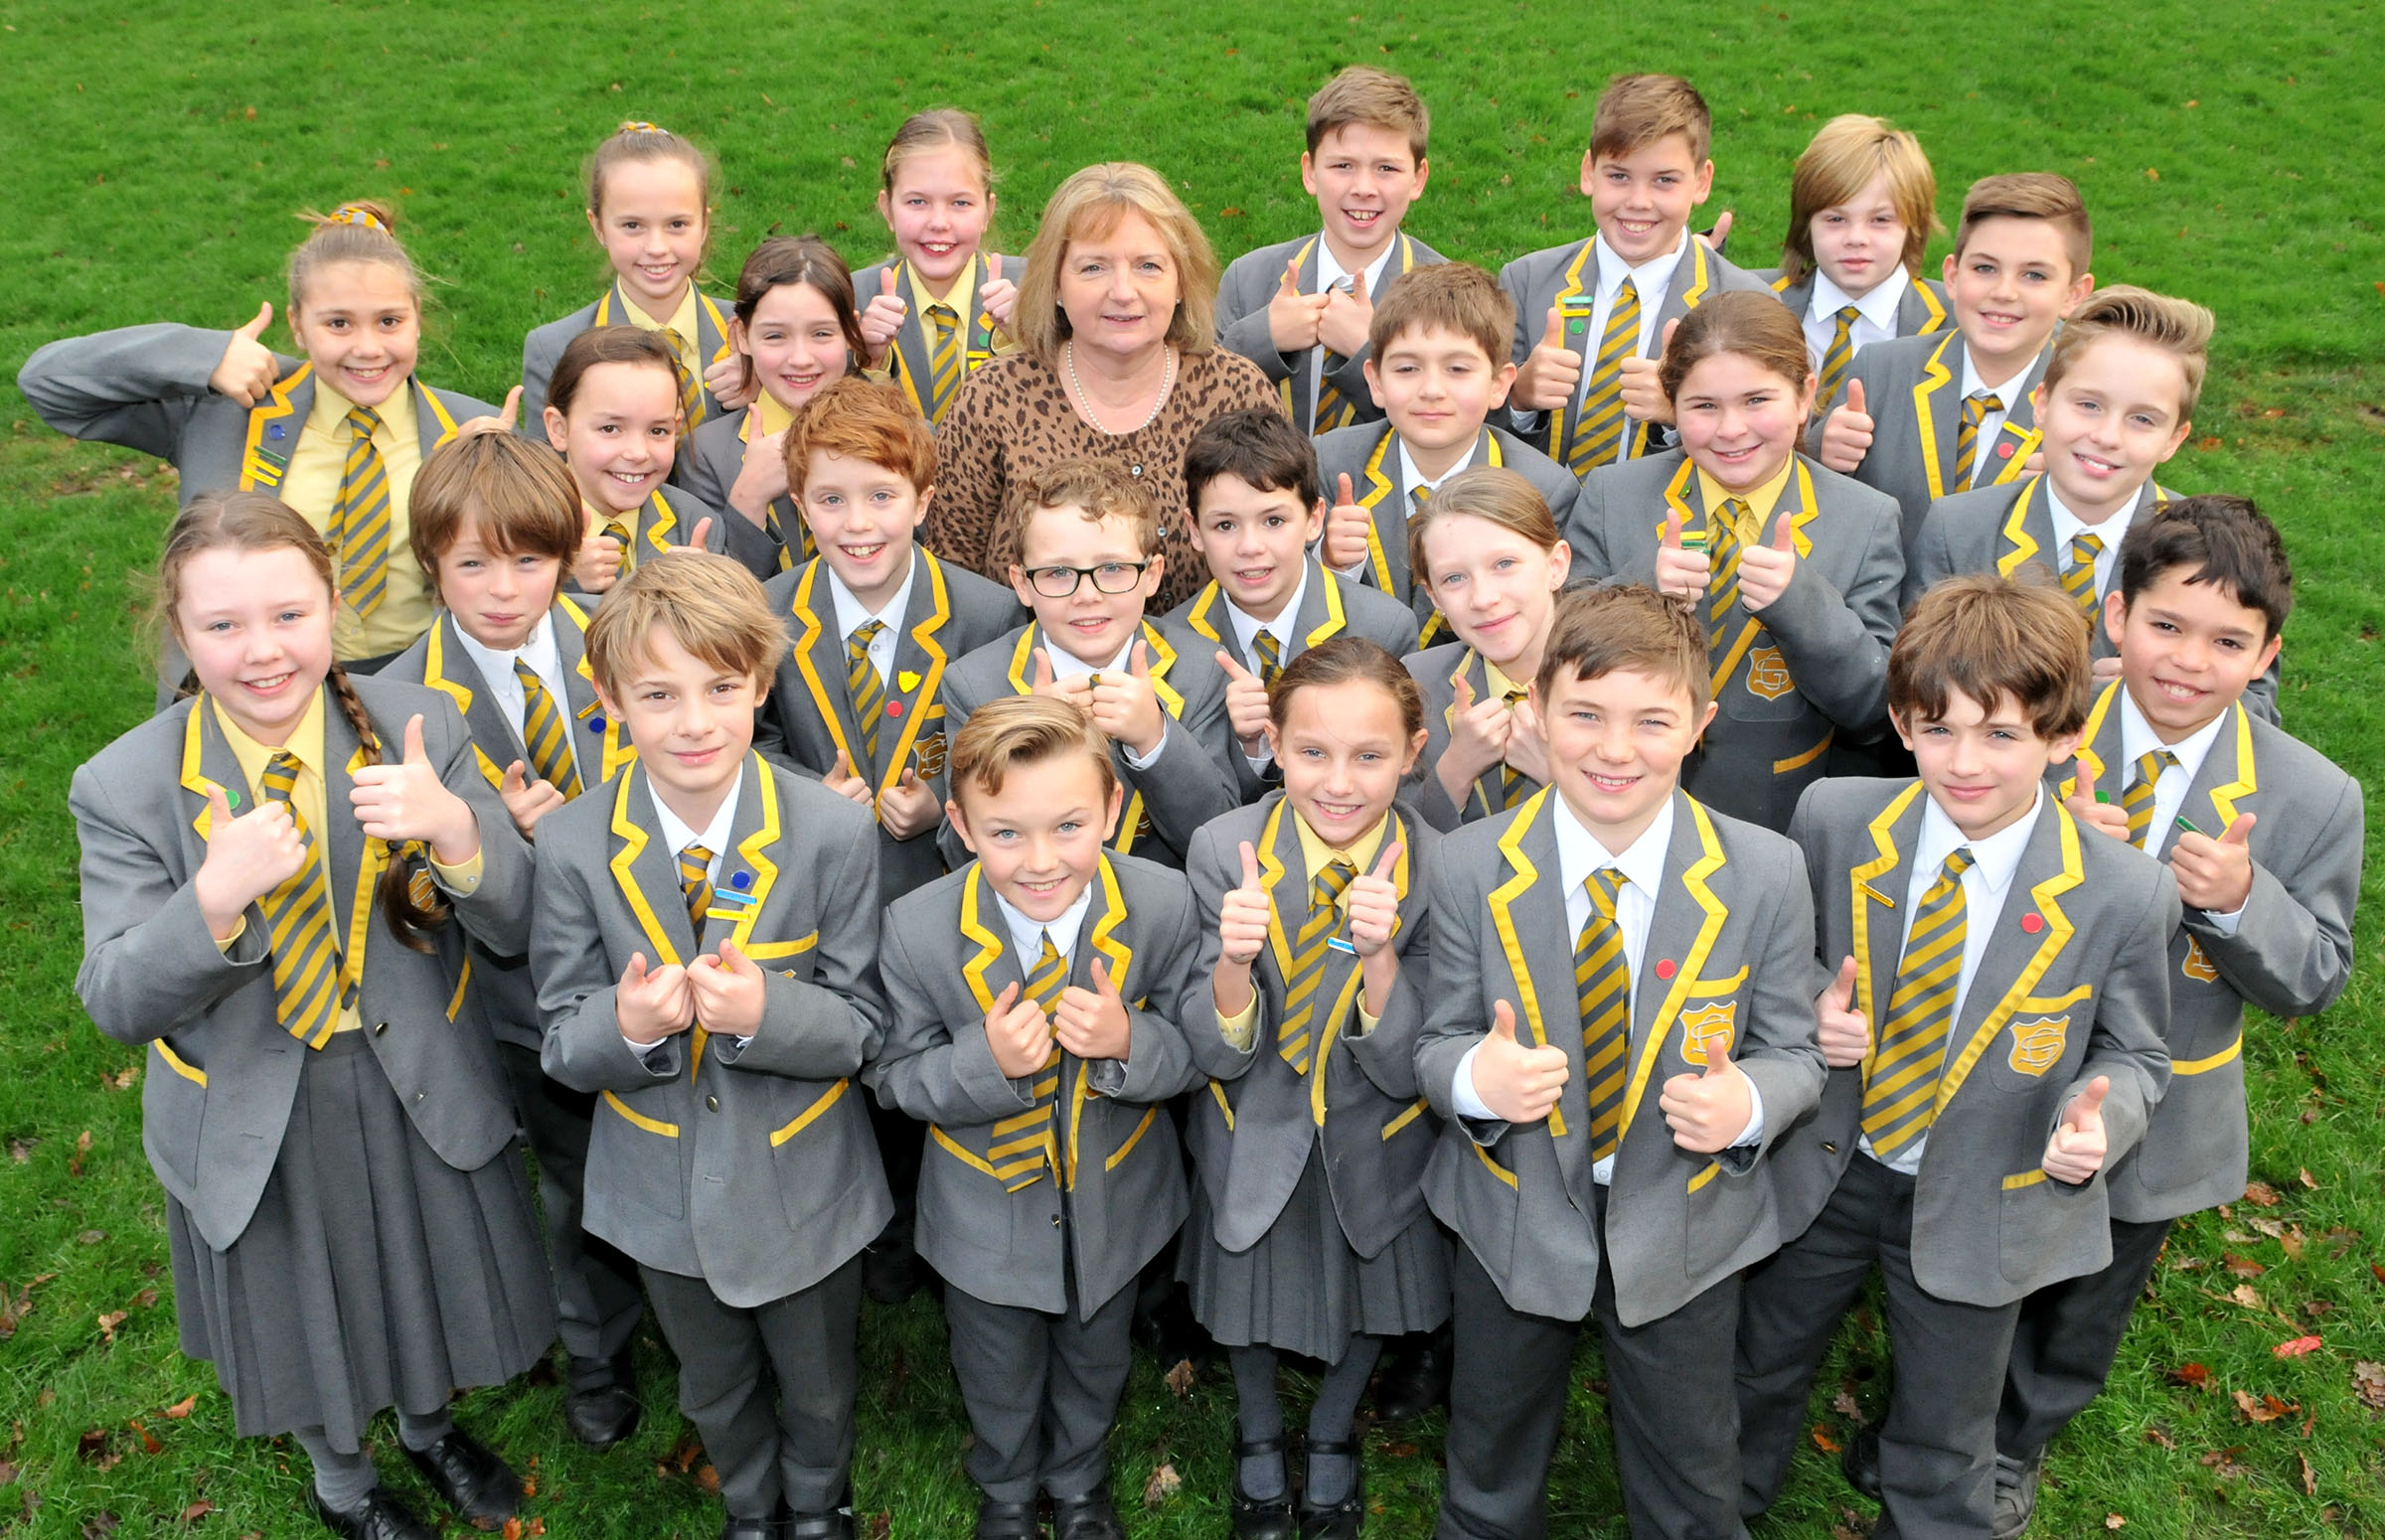 GREENBANK RATED IN TOP 10 PREP SCHOOLS IN UNITED KINGDOM